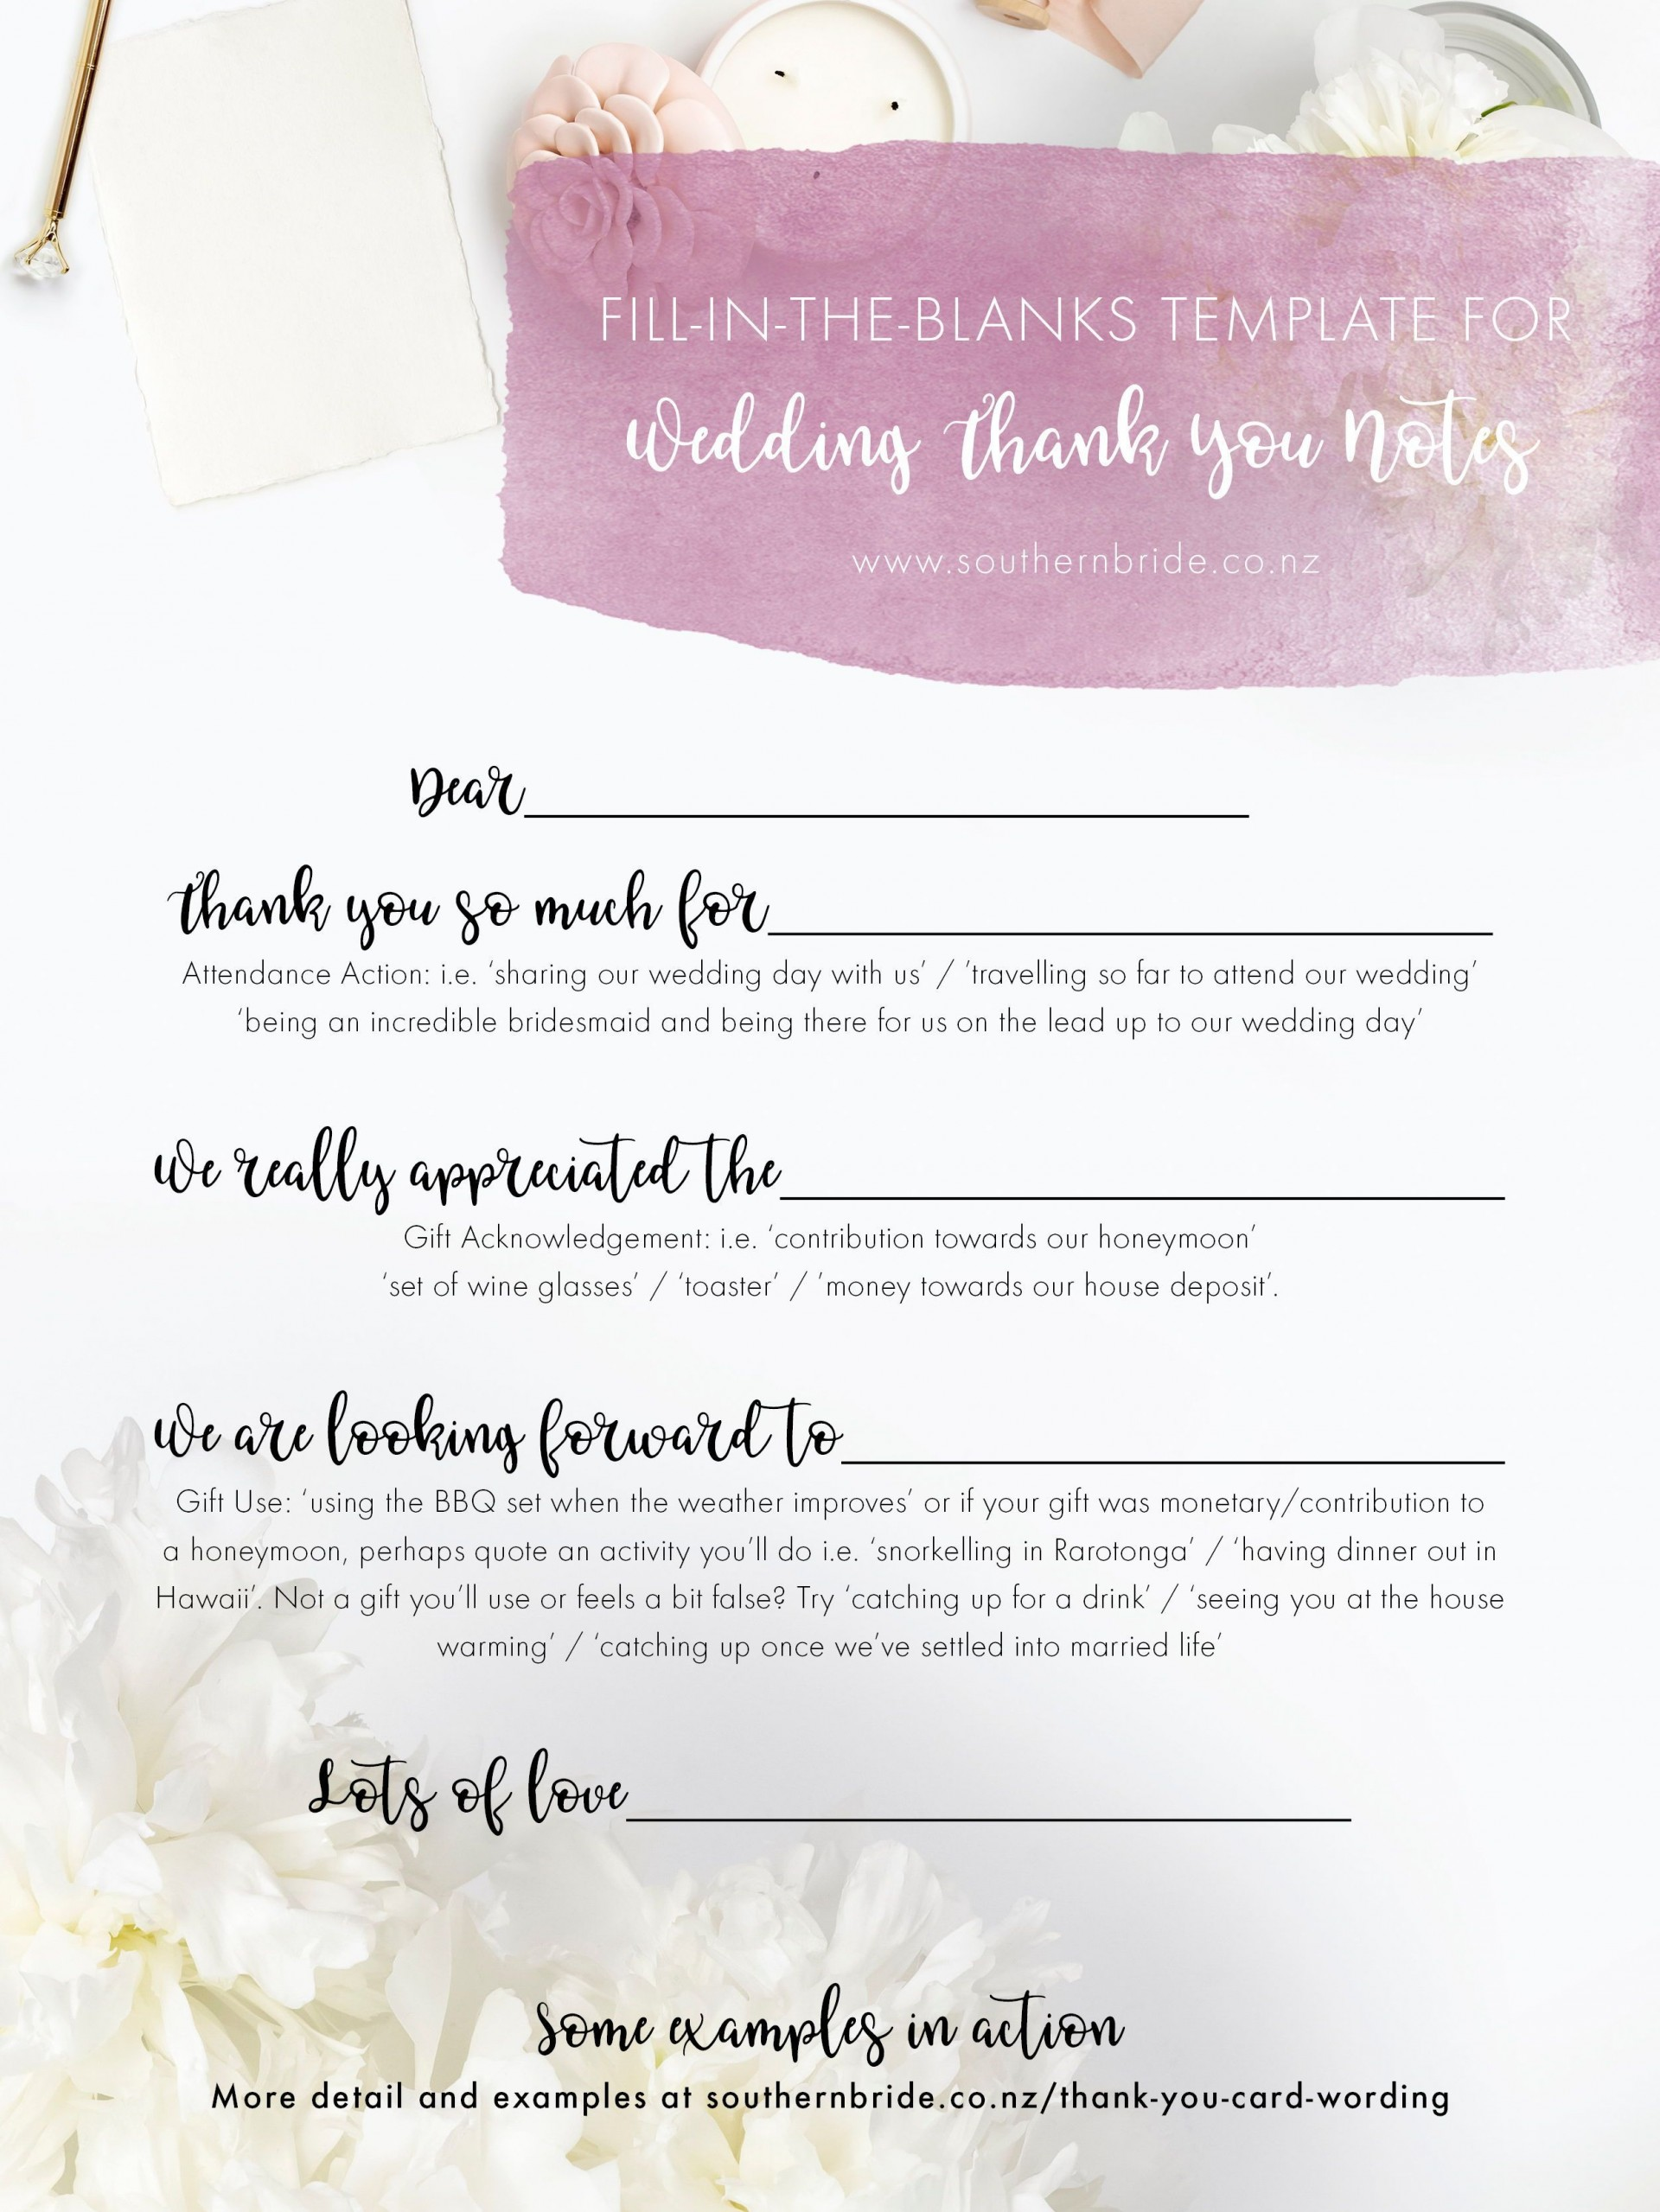 003 Unusual Thank You Note Template For Money Picture  Card Wording Wedding Example Donation Graduation1920